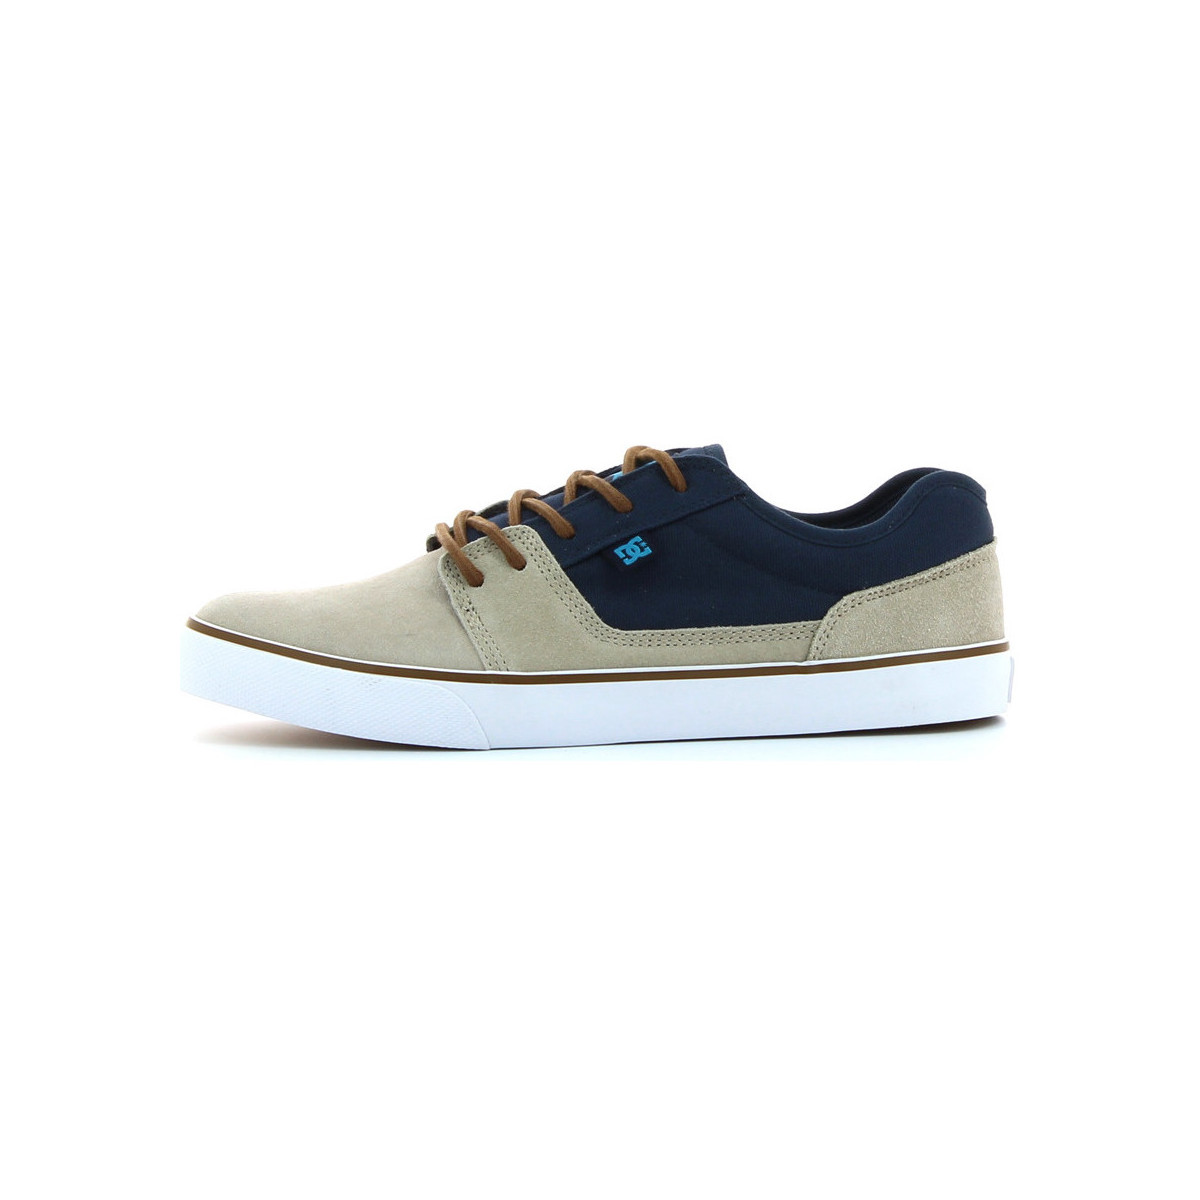 DC Shoes Tonik Beige - Schuhe Sneaker Low Herren 20,16 €